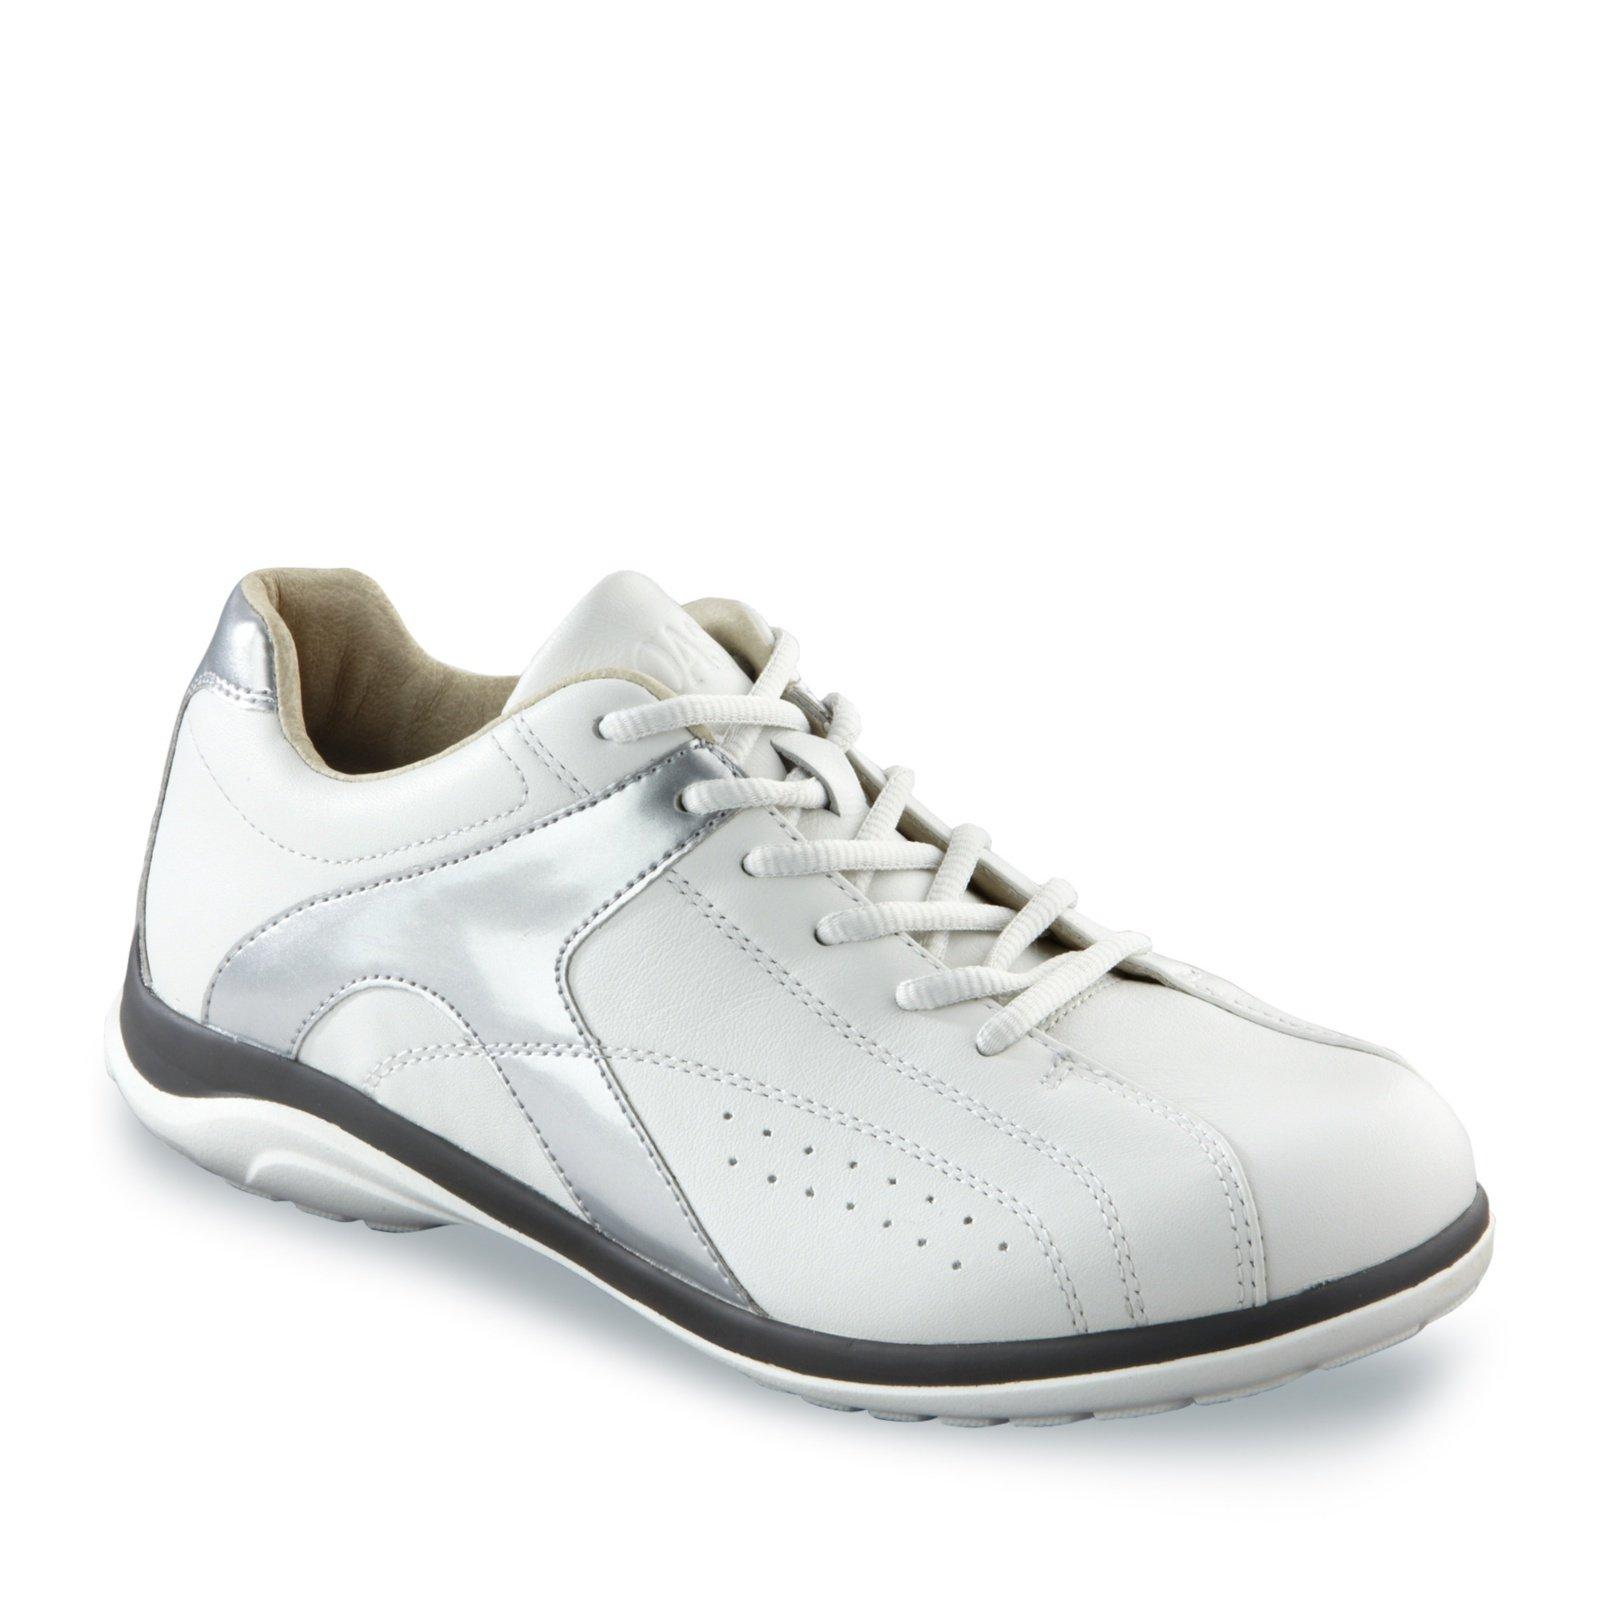 Oasis Women's Chrissie Lace-Up Shoes, White/Silver, 7 M/C-D by Oasis